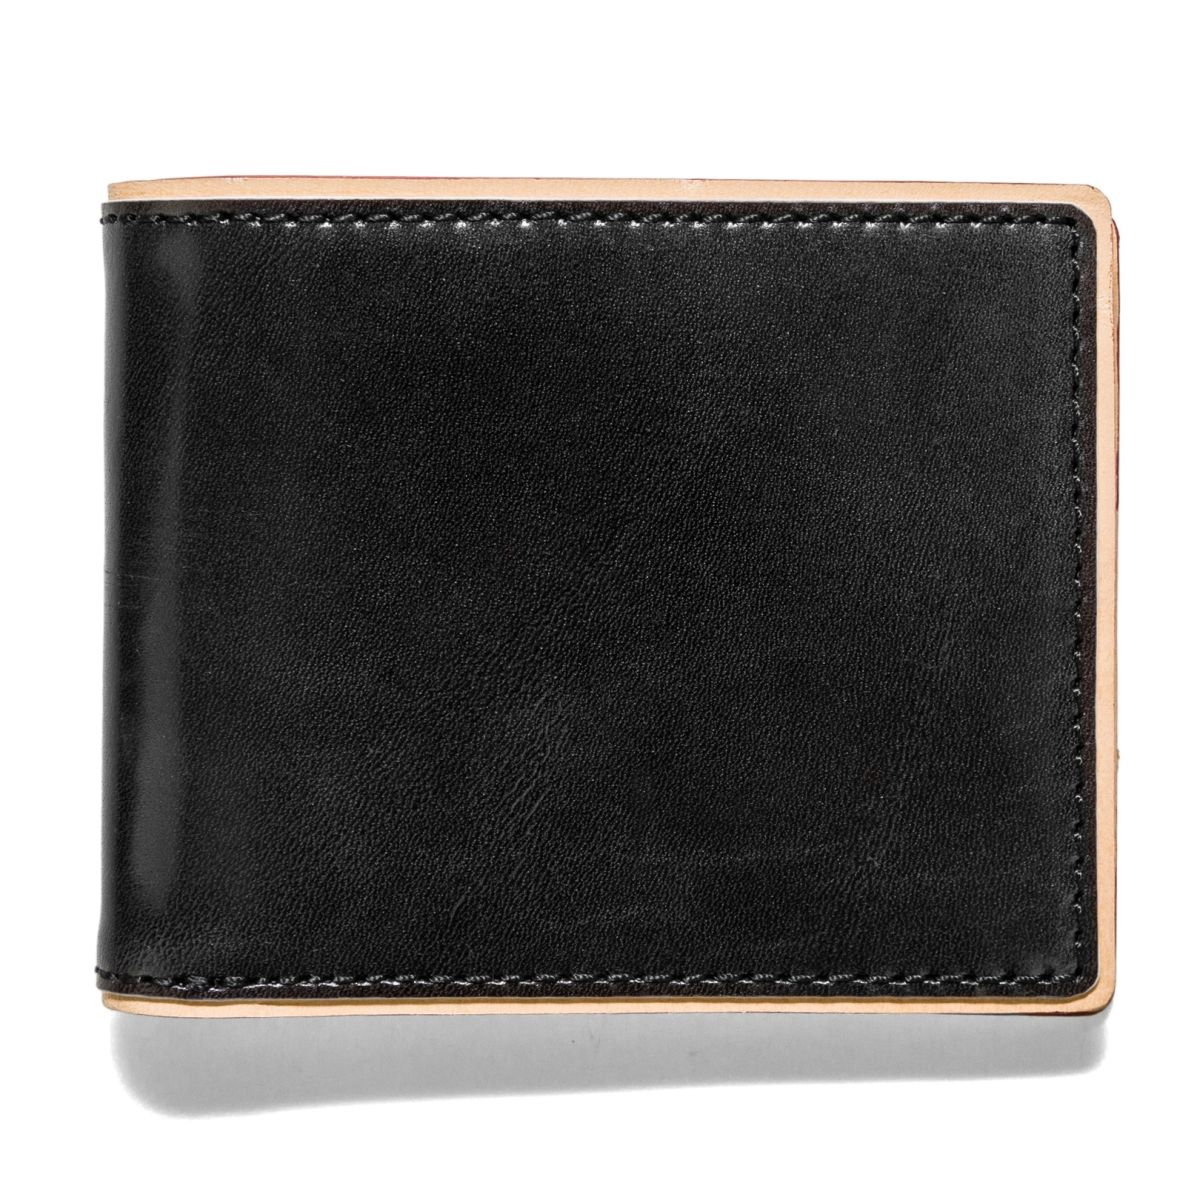 J.FOLD DUOTONE Leather Wallet - Black